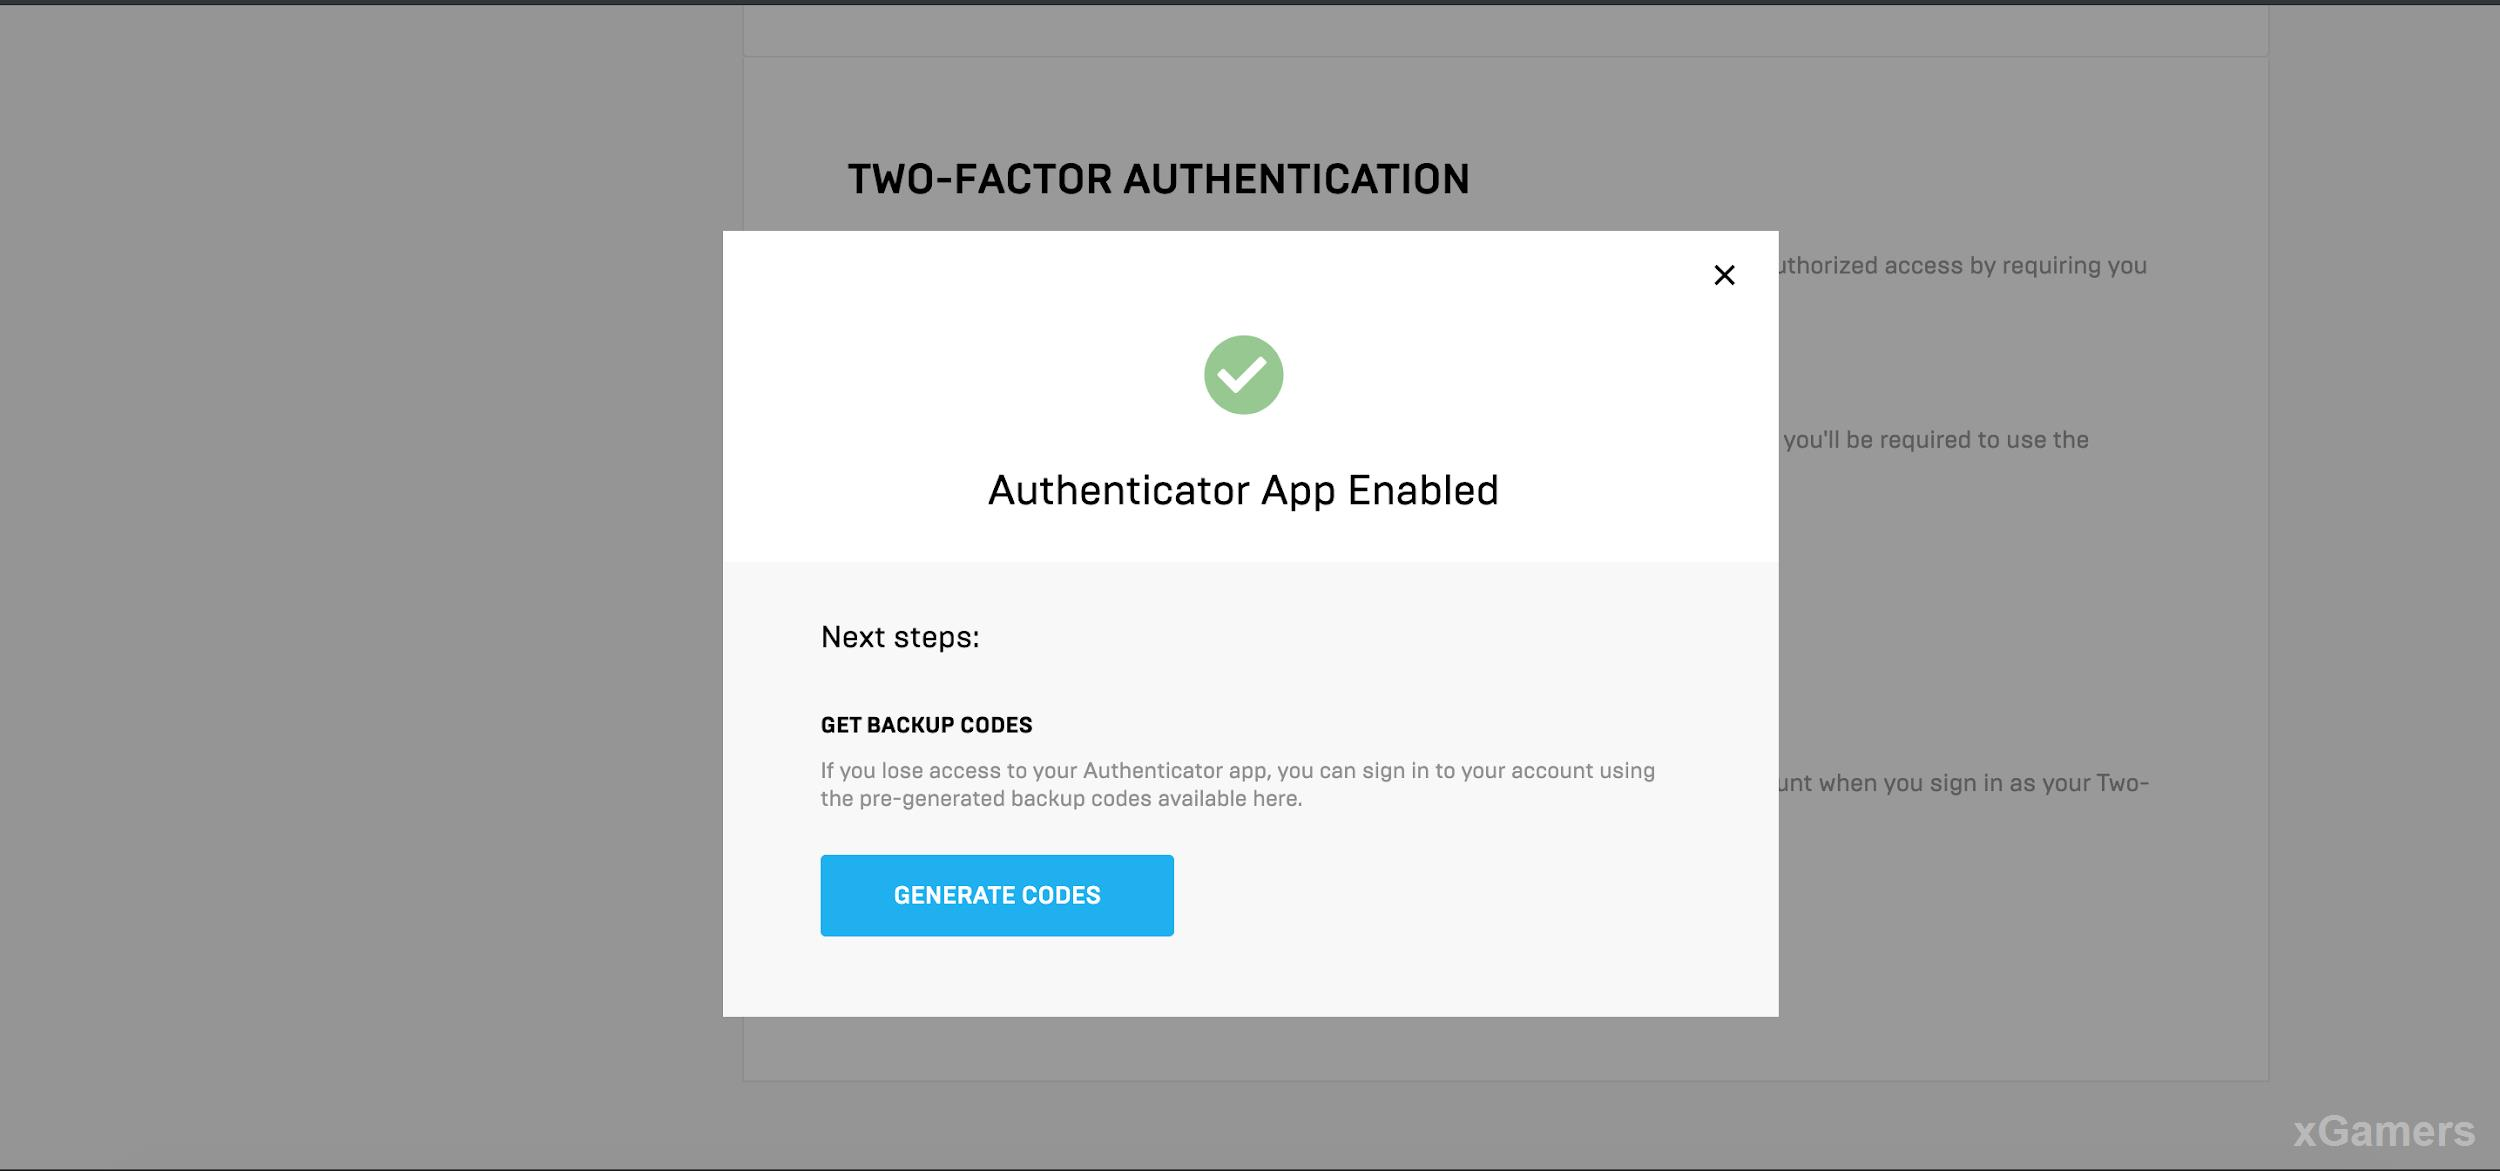 Notify: Authenticator App Enabled